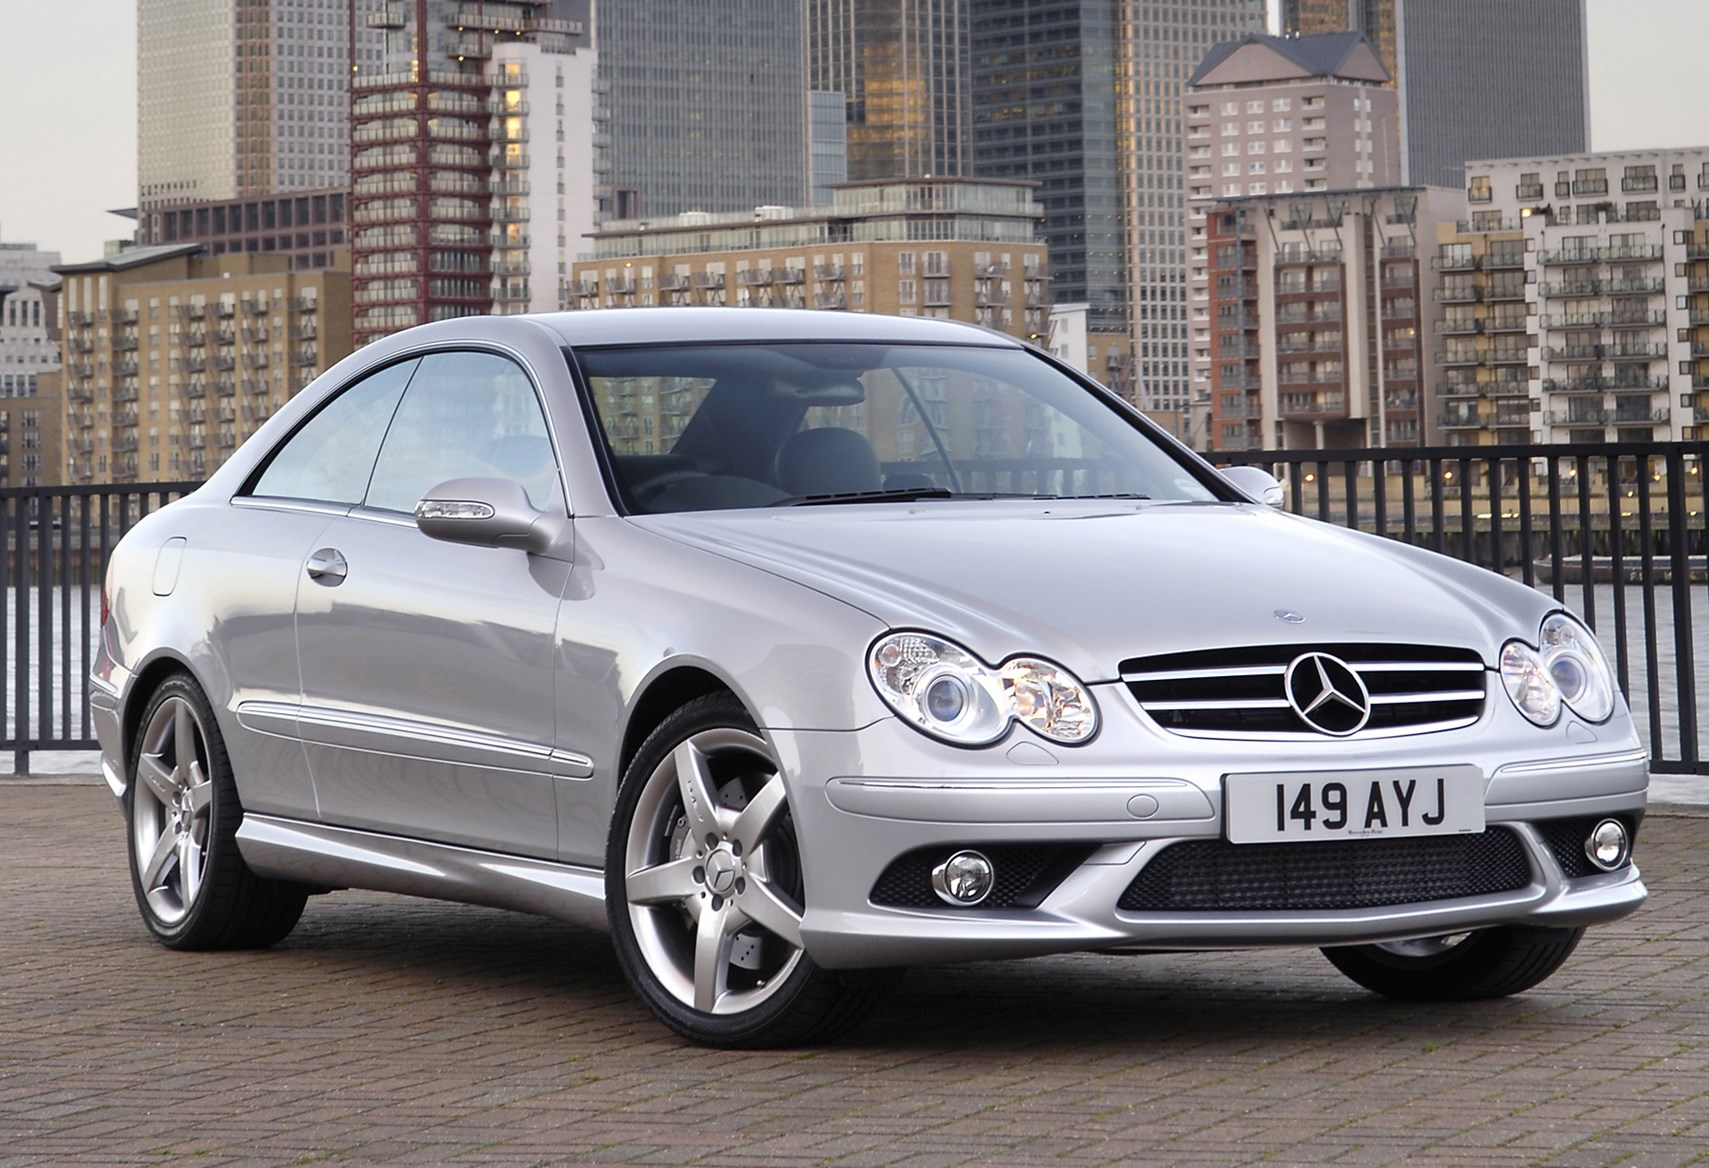 Mercedes Benz Clk Coupe For Sale